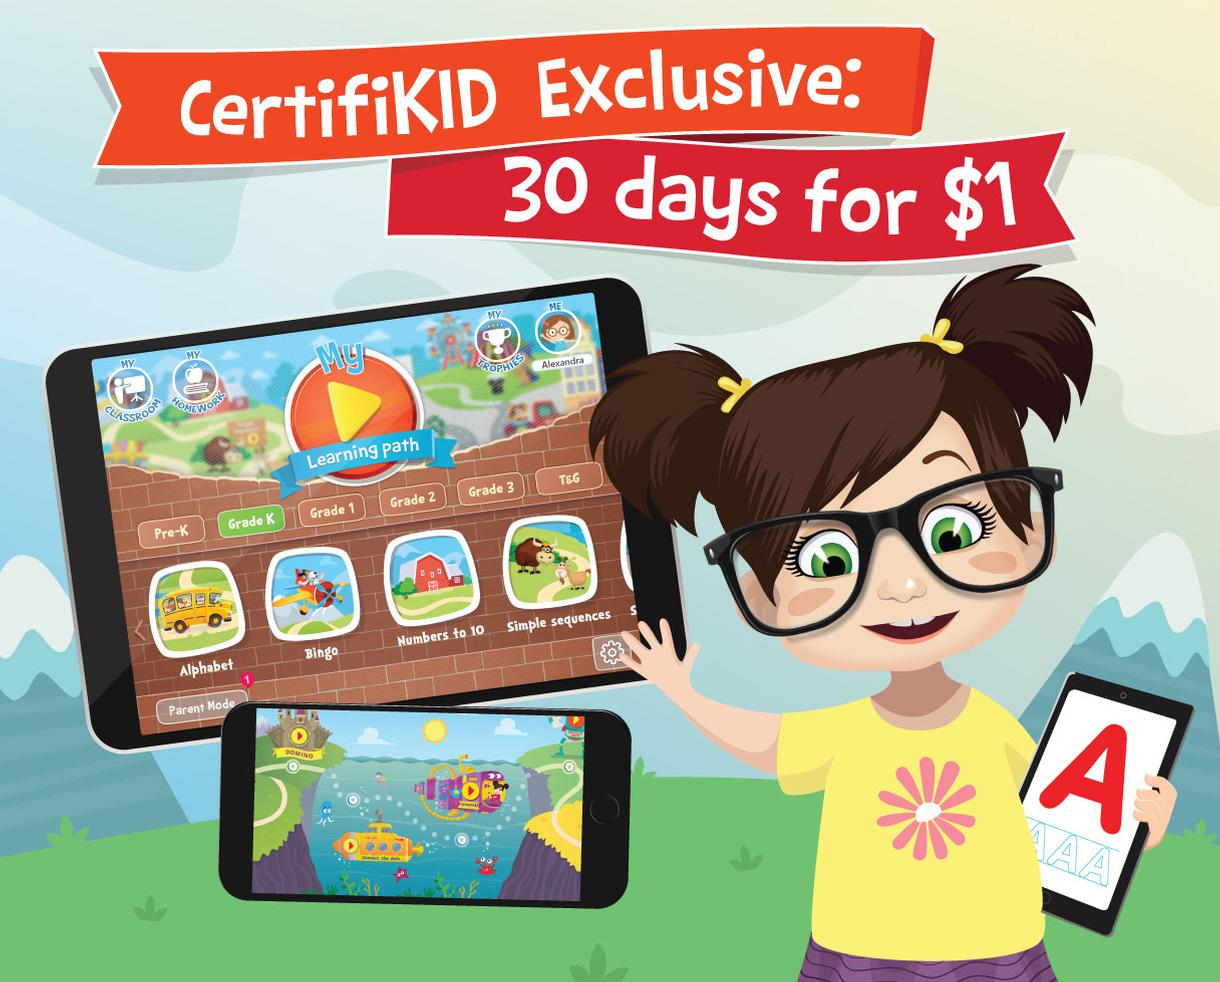 EXCLUSIVE OFFER: 30 Days of Kids Academy for Just $1